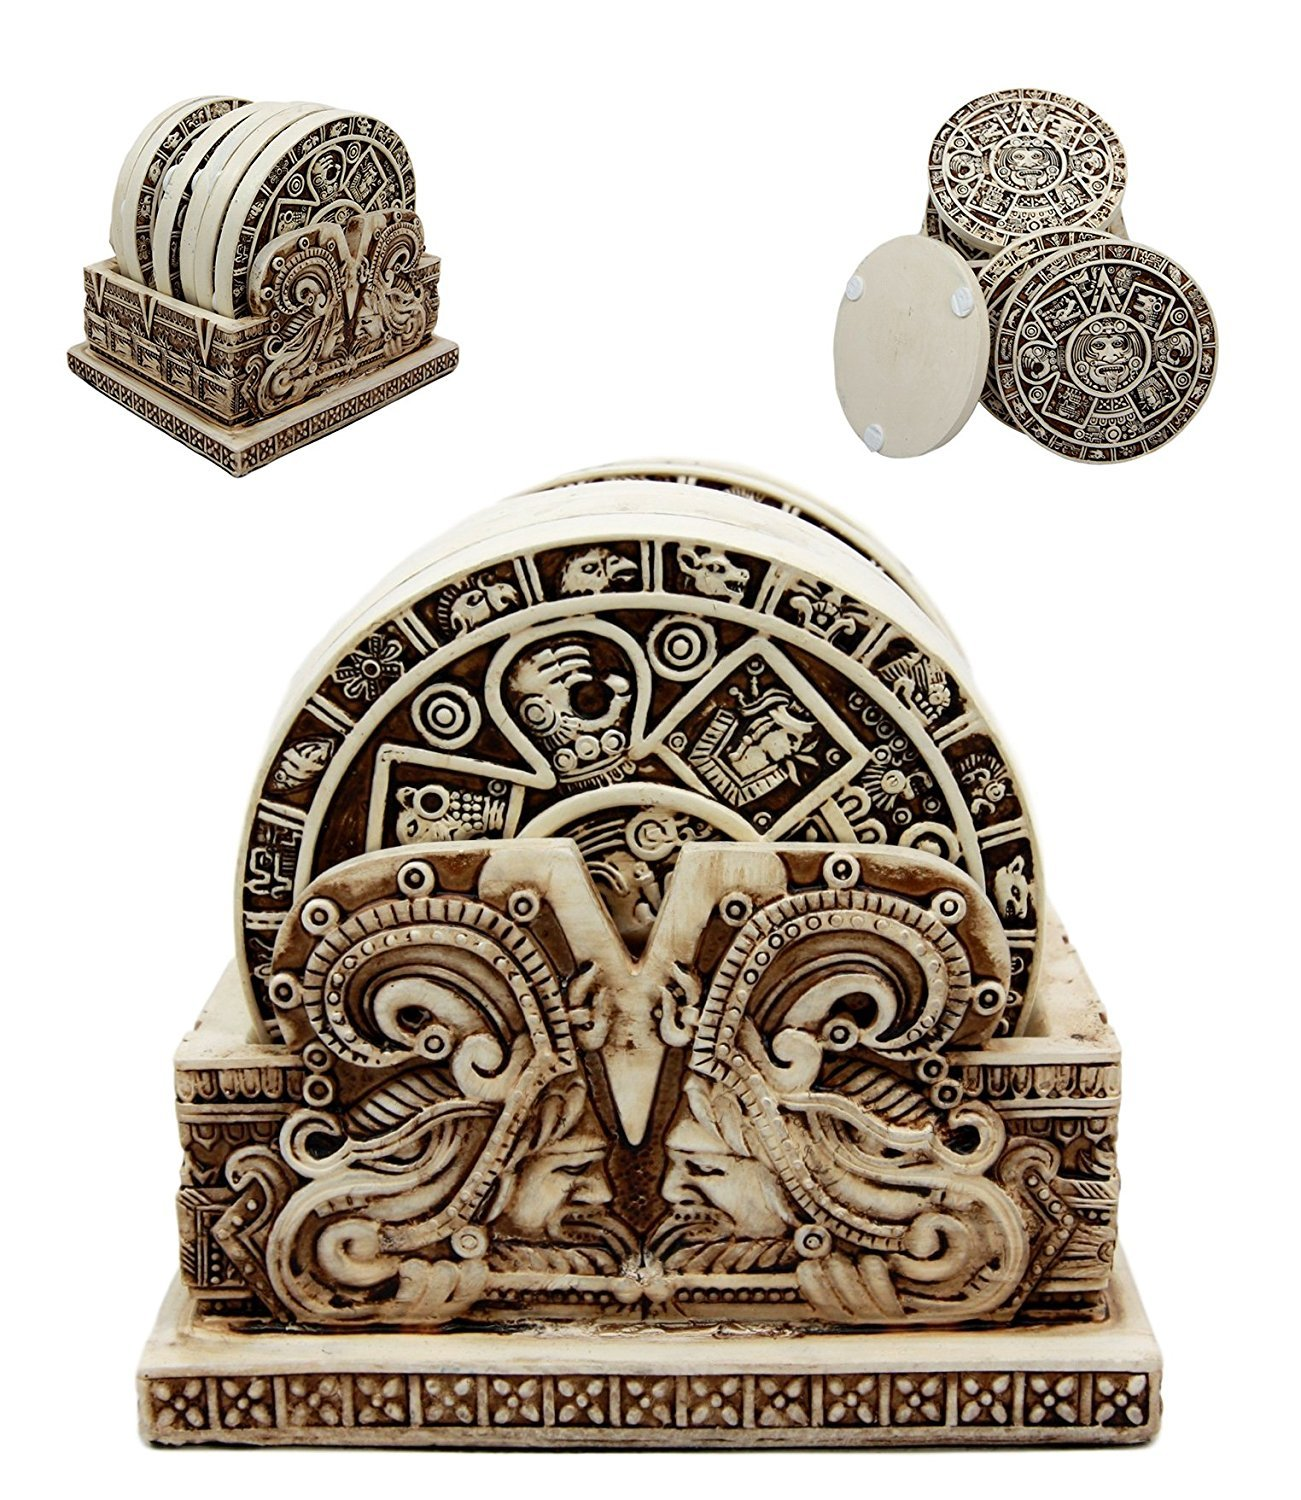 Ancient Aztec Demonic Gods Warrior Rank Symbols Set of 6 Coasters With Holder Figurine